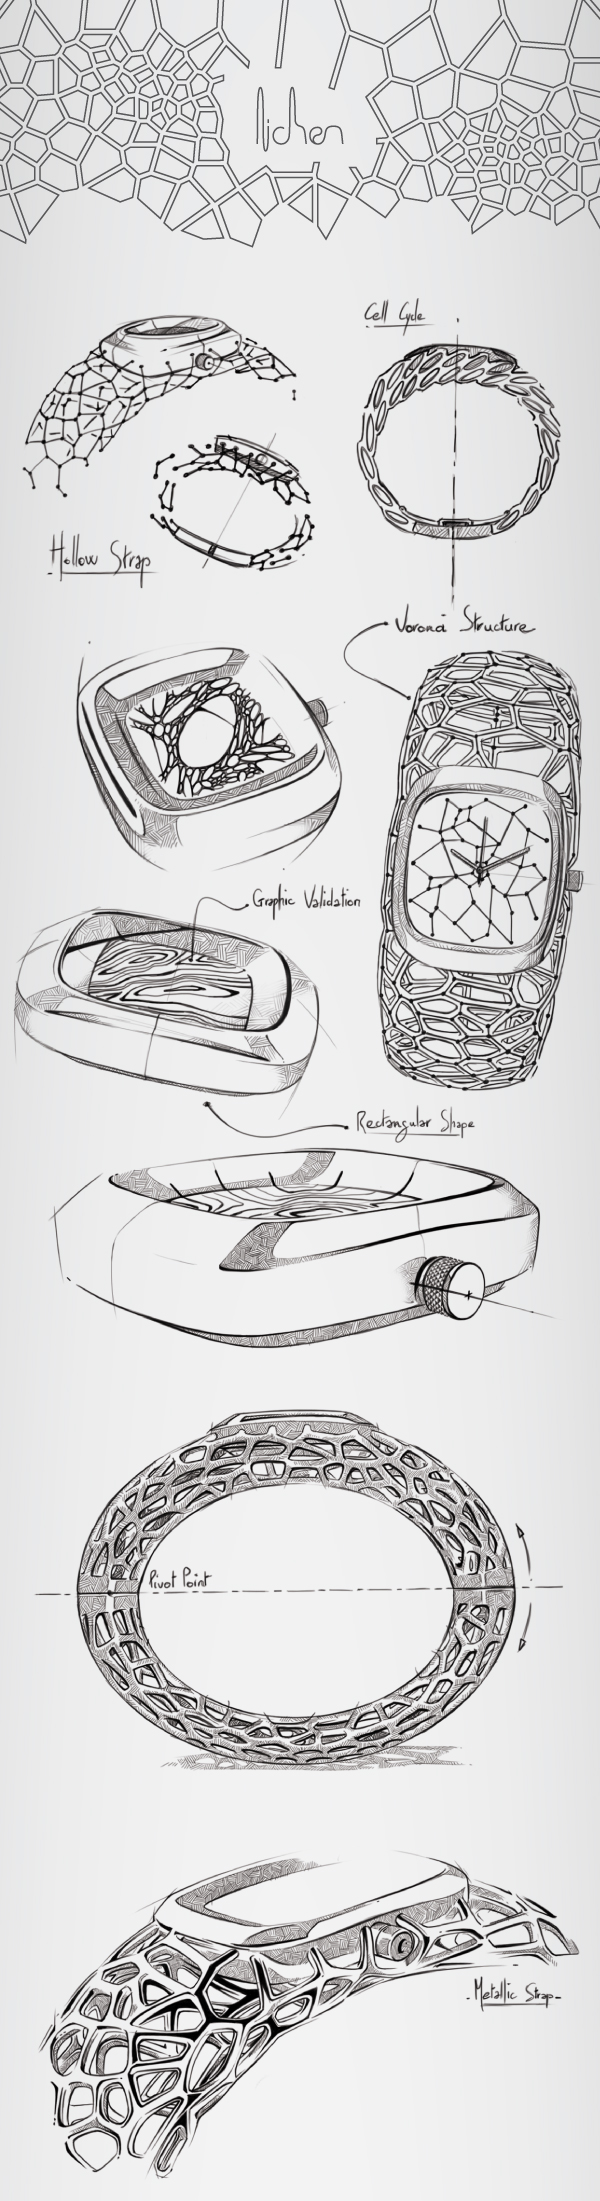 watch,voronoi,3d printing,women,wirstwatch,copper,mechanical,organic,cycle,algae,horlogy,Jewellery,squeleton,sketch,Watches